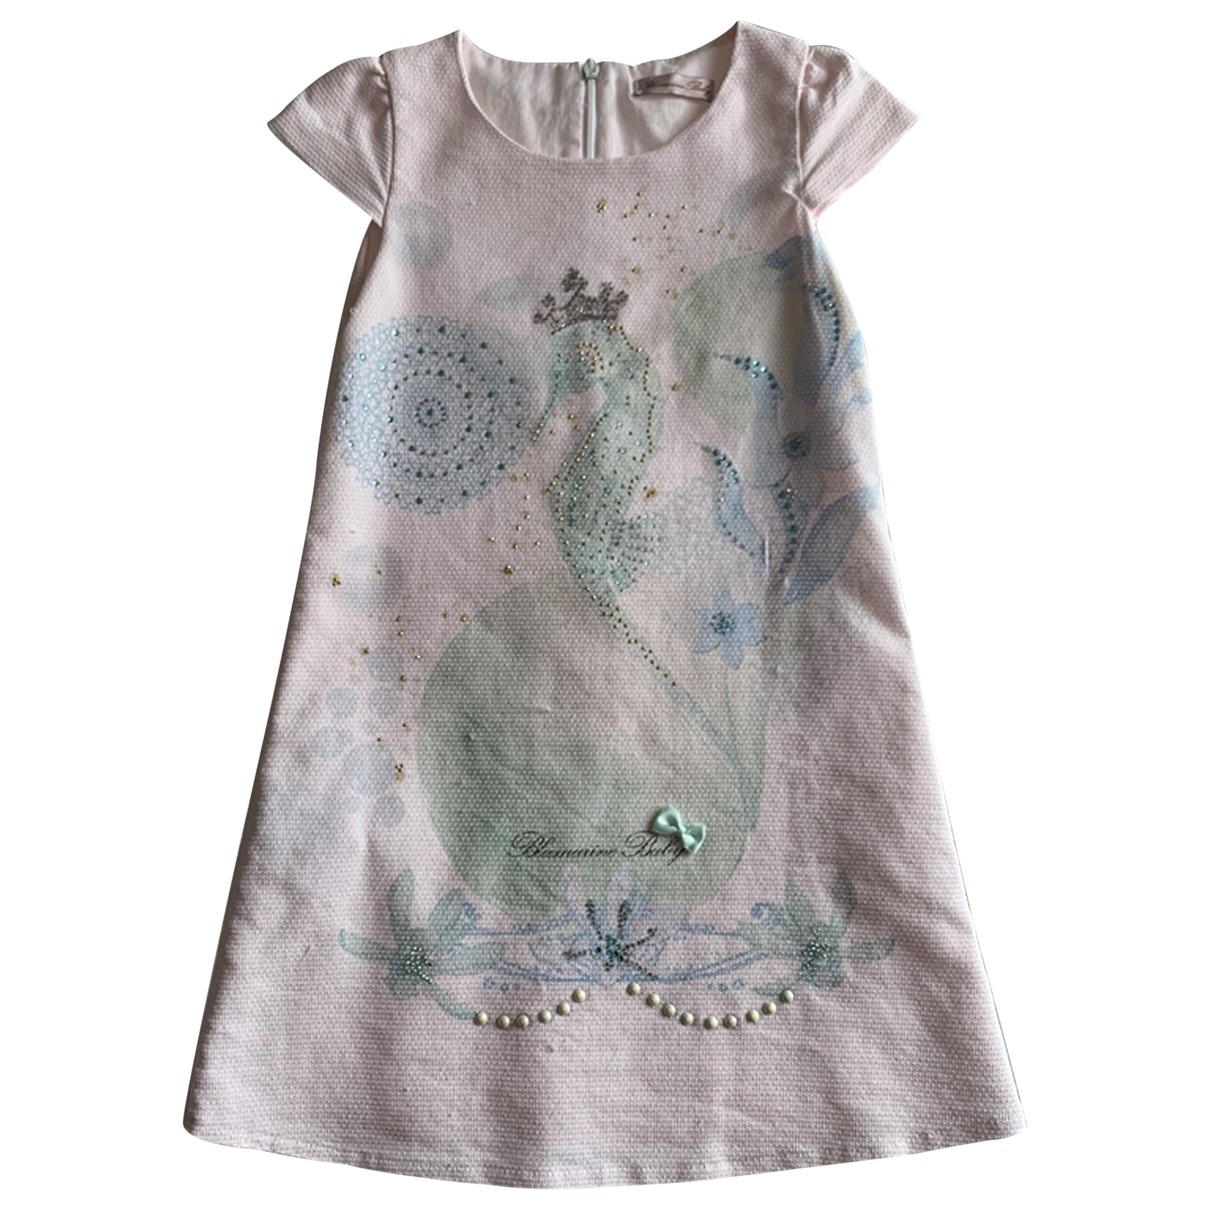 Blumarine \N Pink Cotton dress for Kids 6 years - up to 114cm FR